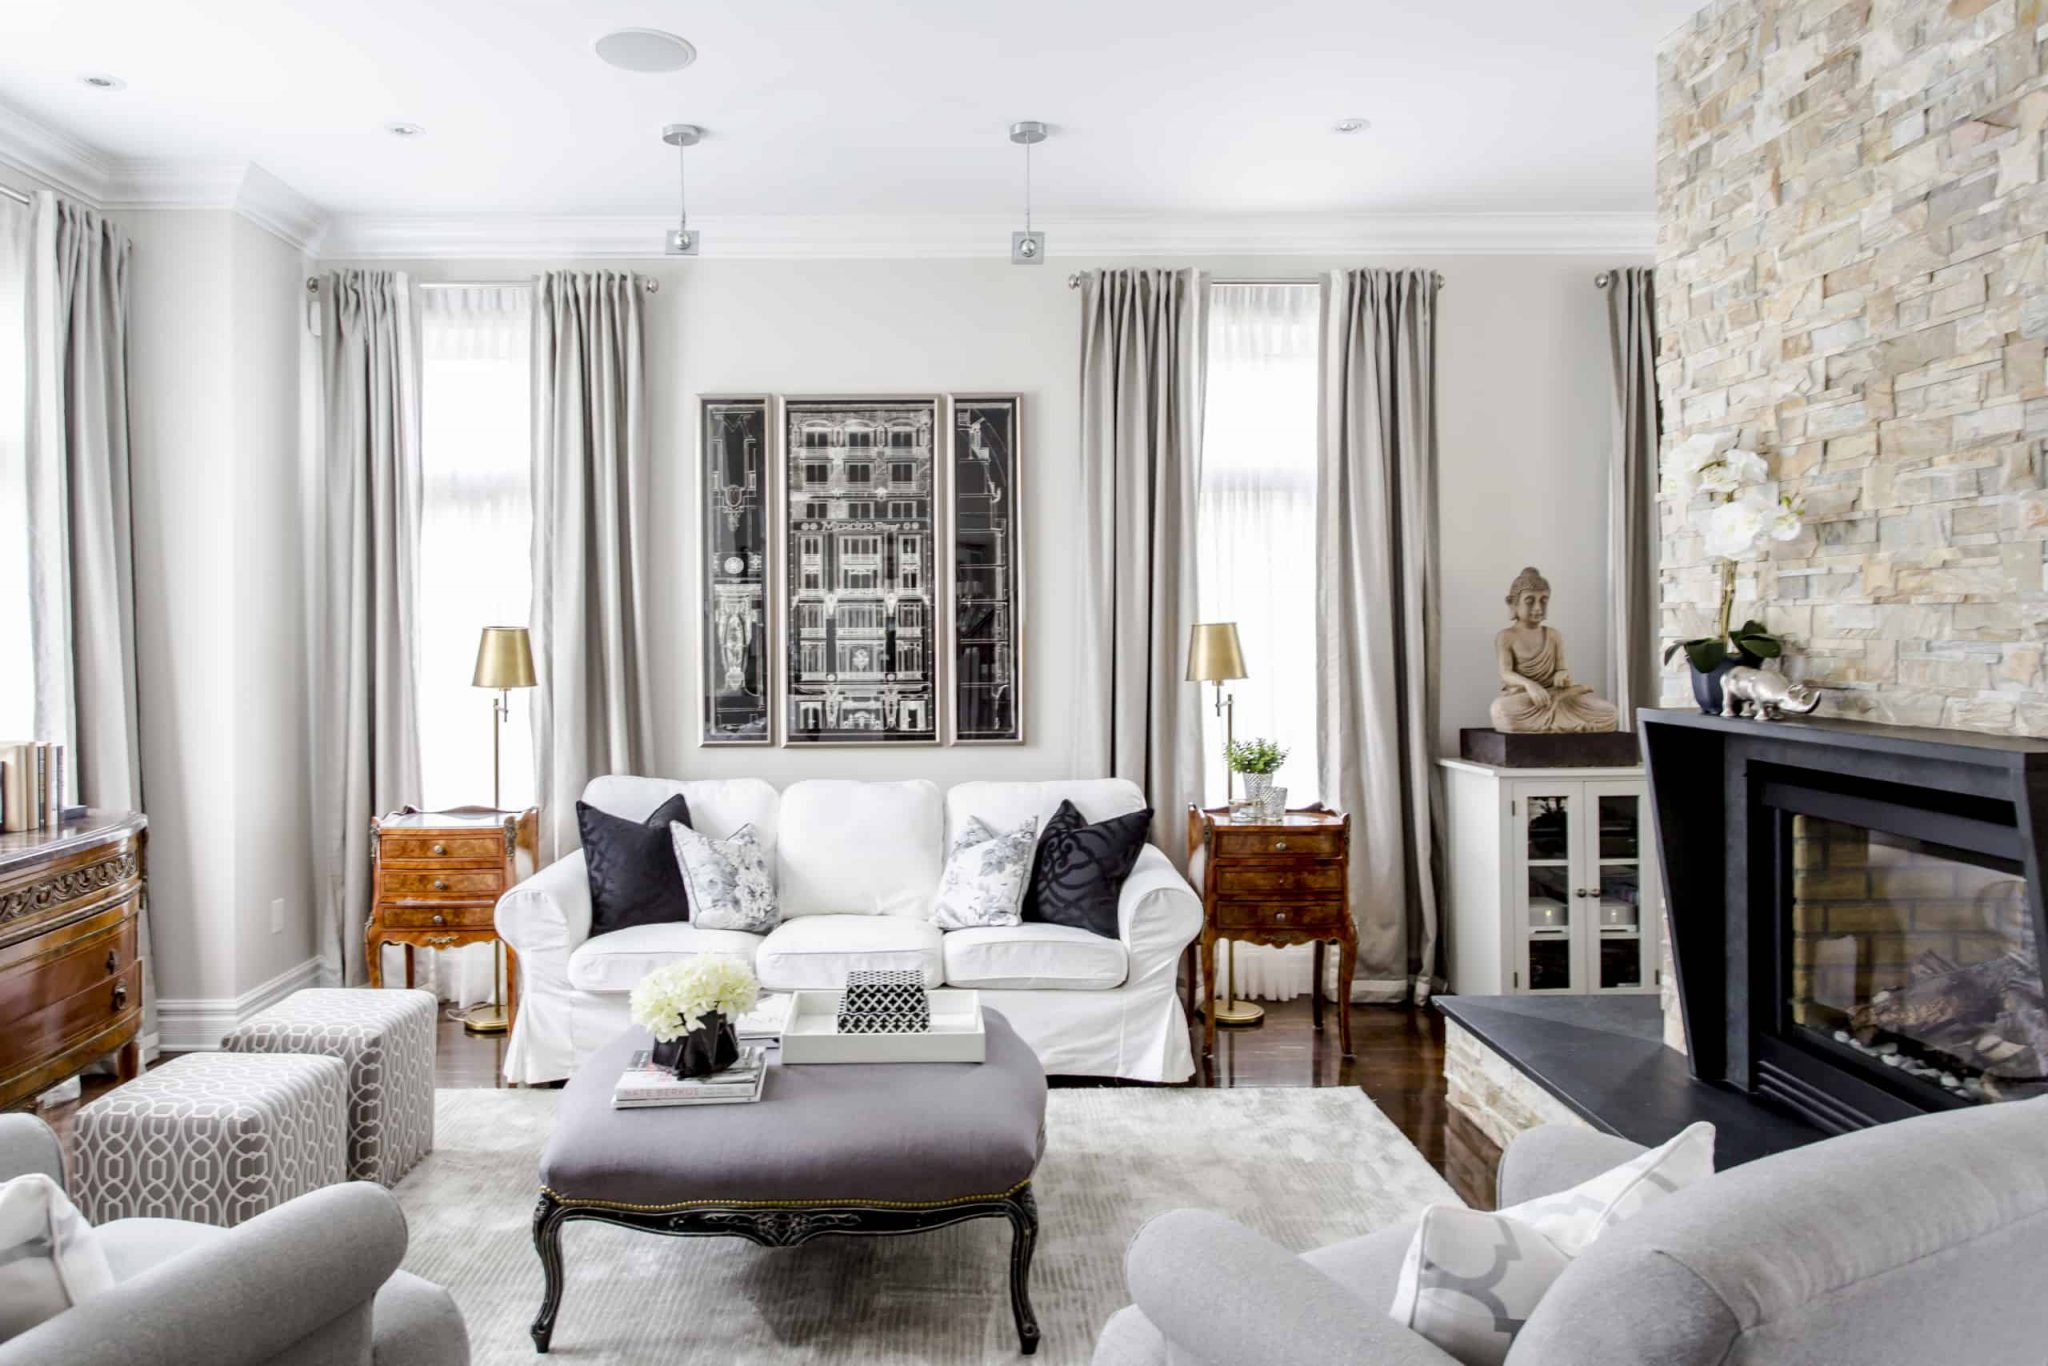 Modern living room containing a bright white couch with a picture above it